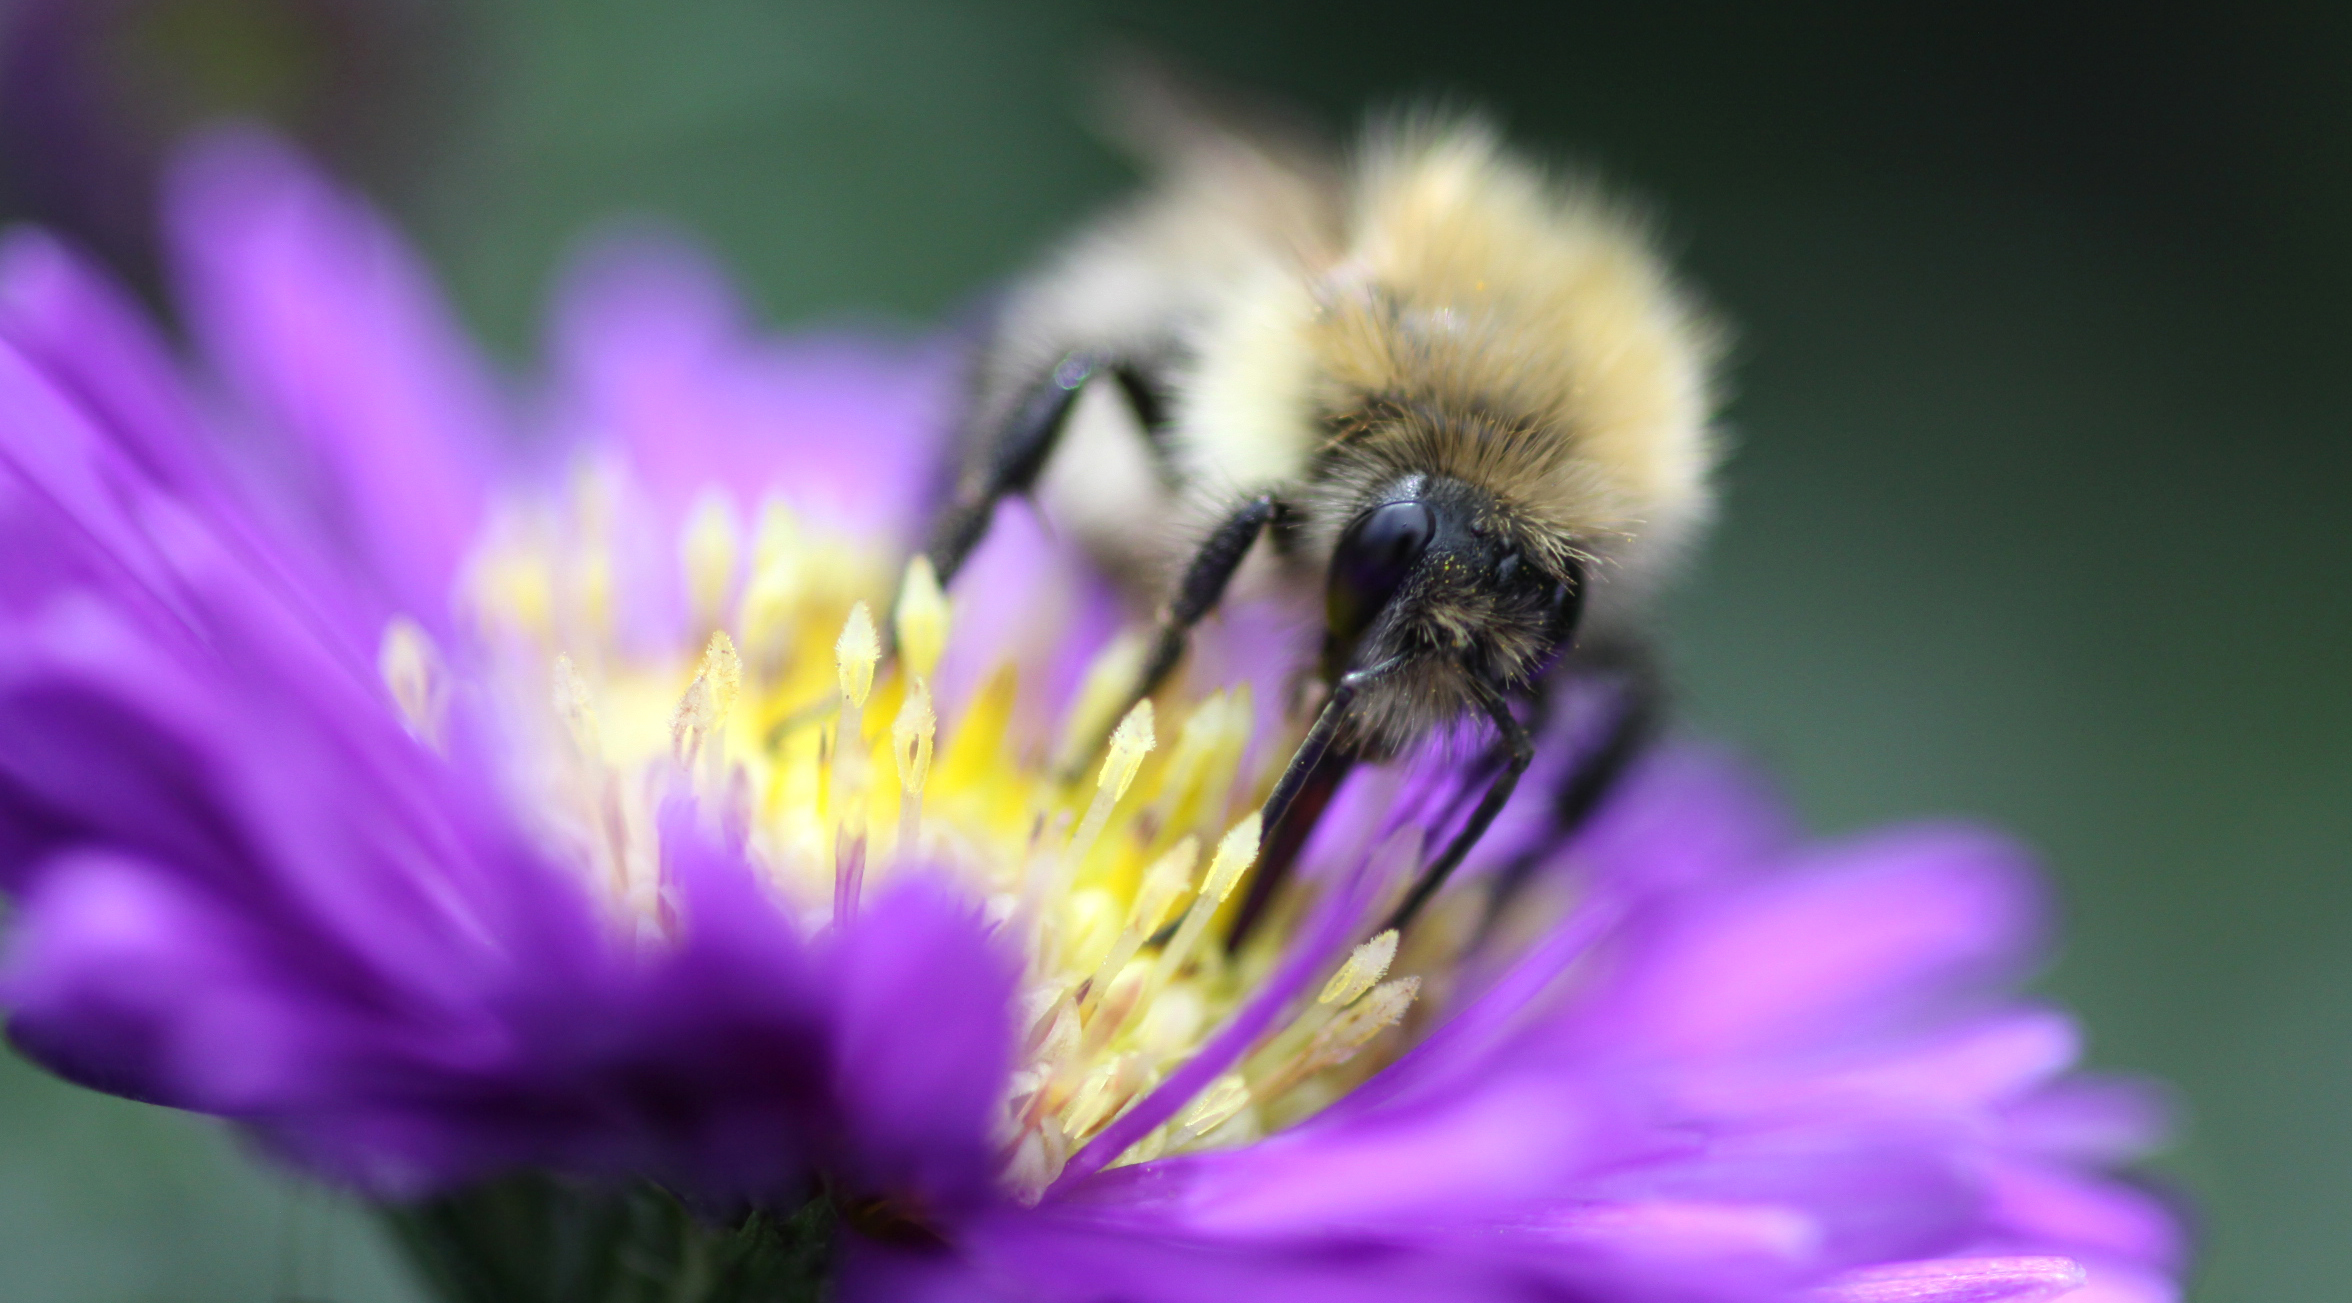 Bees and other pollinators are crucial to our planet's health